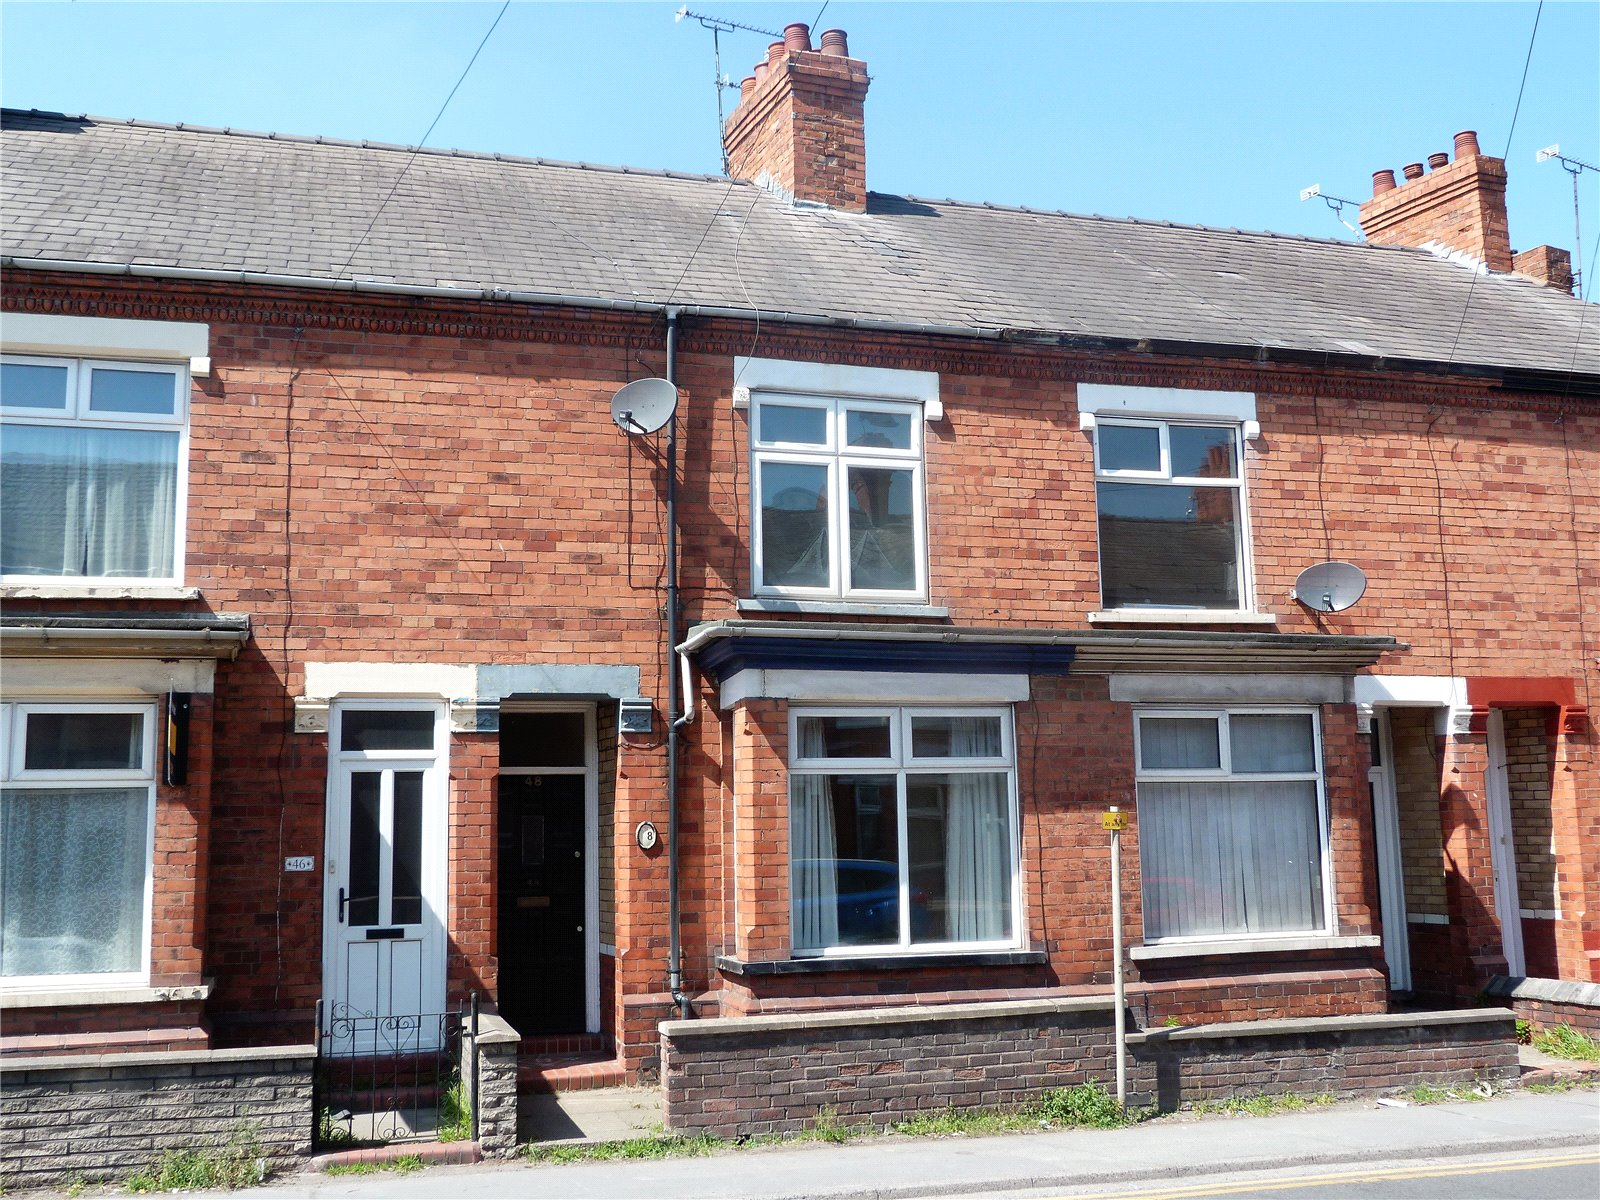 Whitegates crewe 3 bedroom house for sale in underwood for Underwood house for sale